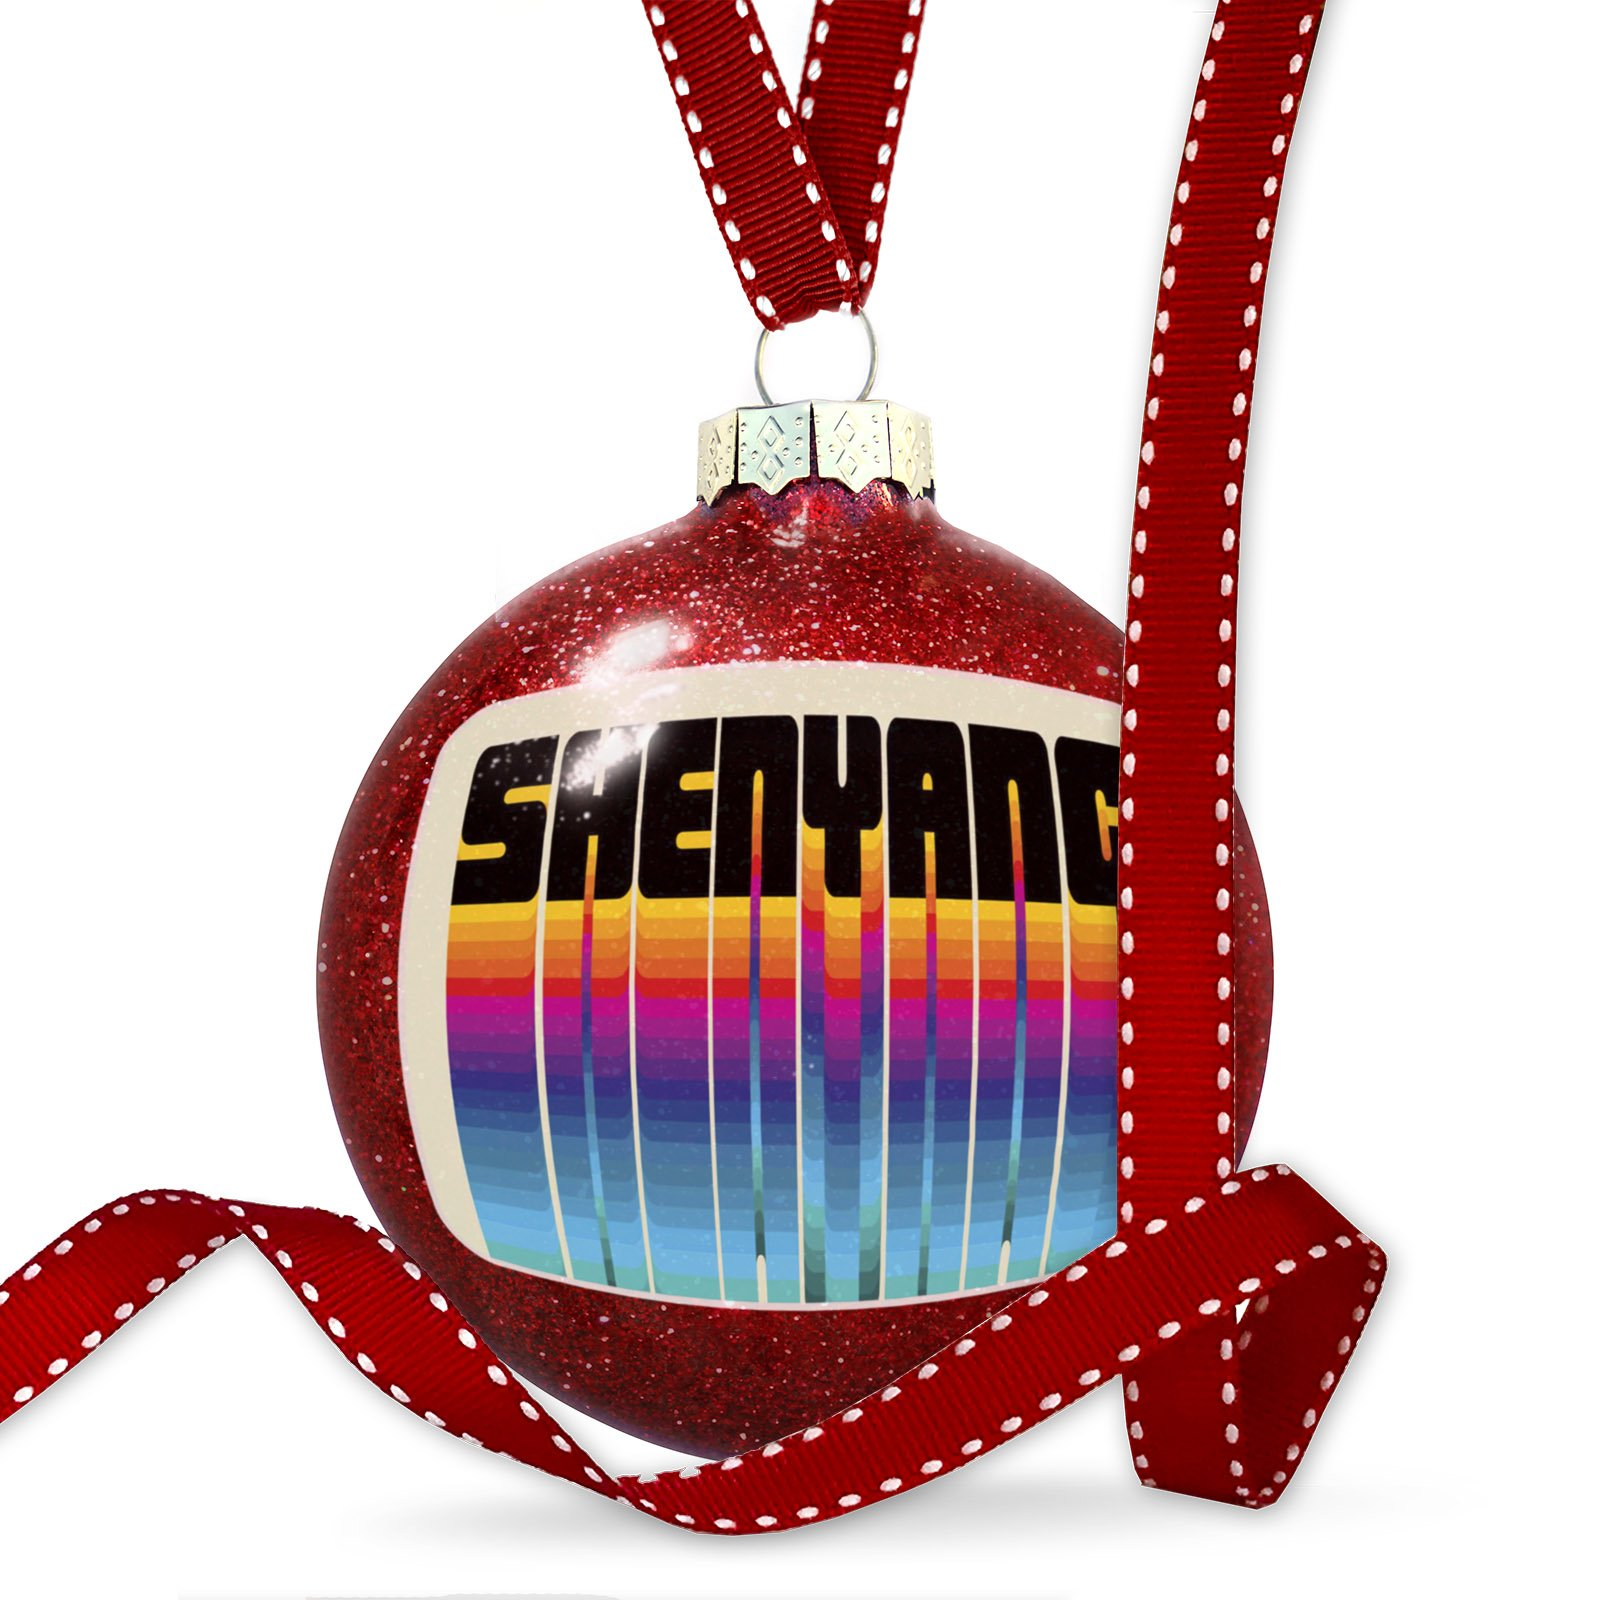 Christmas Decoration Retro Cites States Countries Shenyang Ornament by NEONBLOND (Image #1)